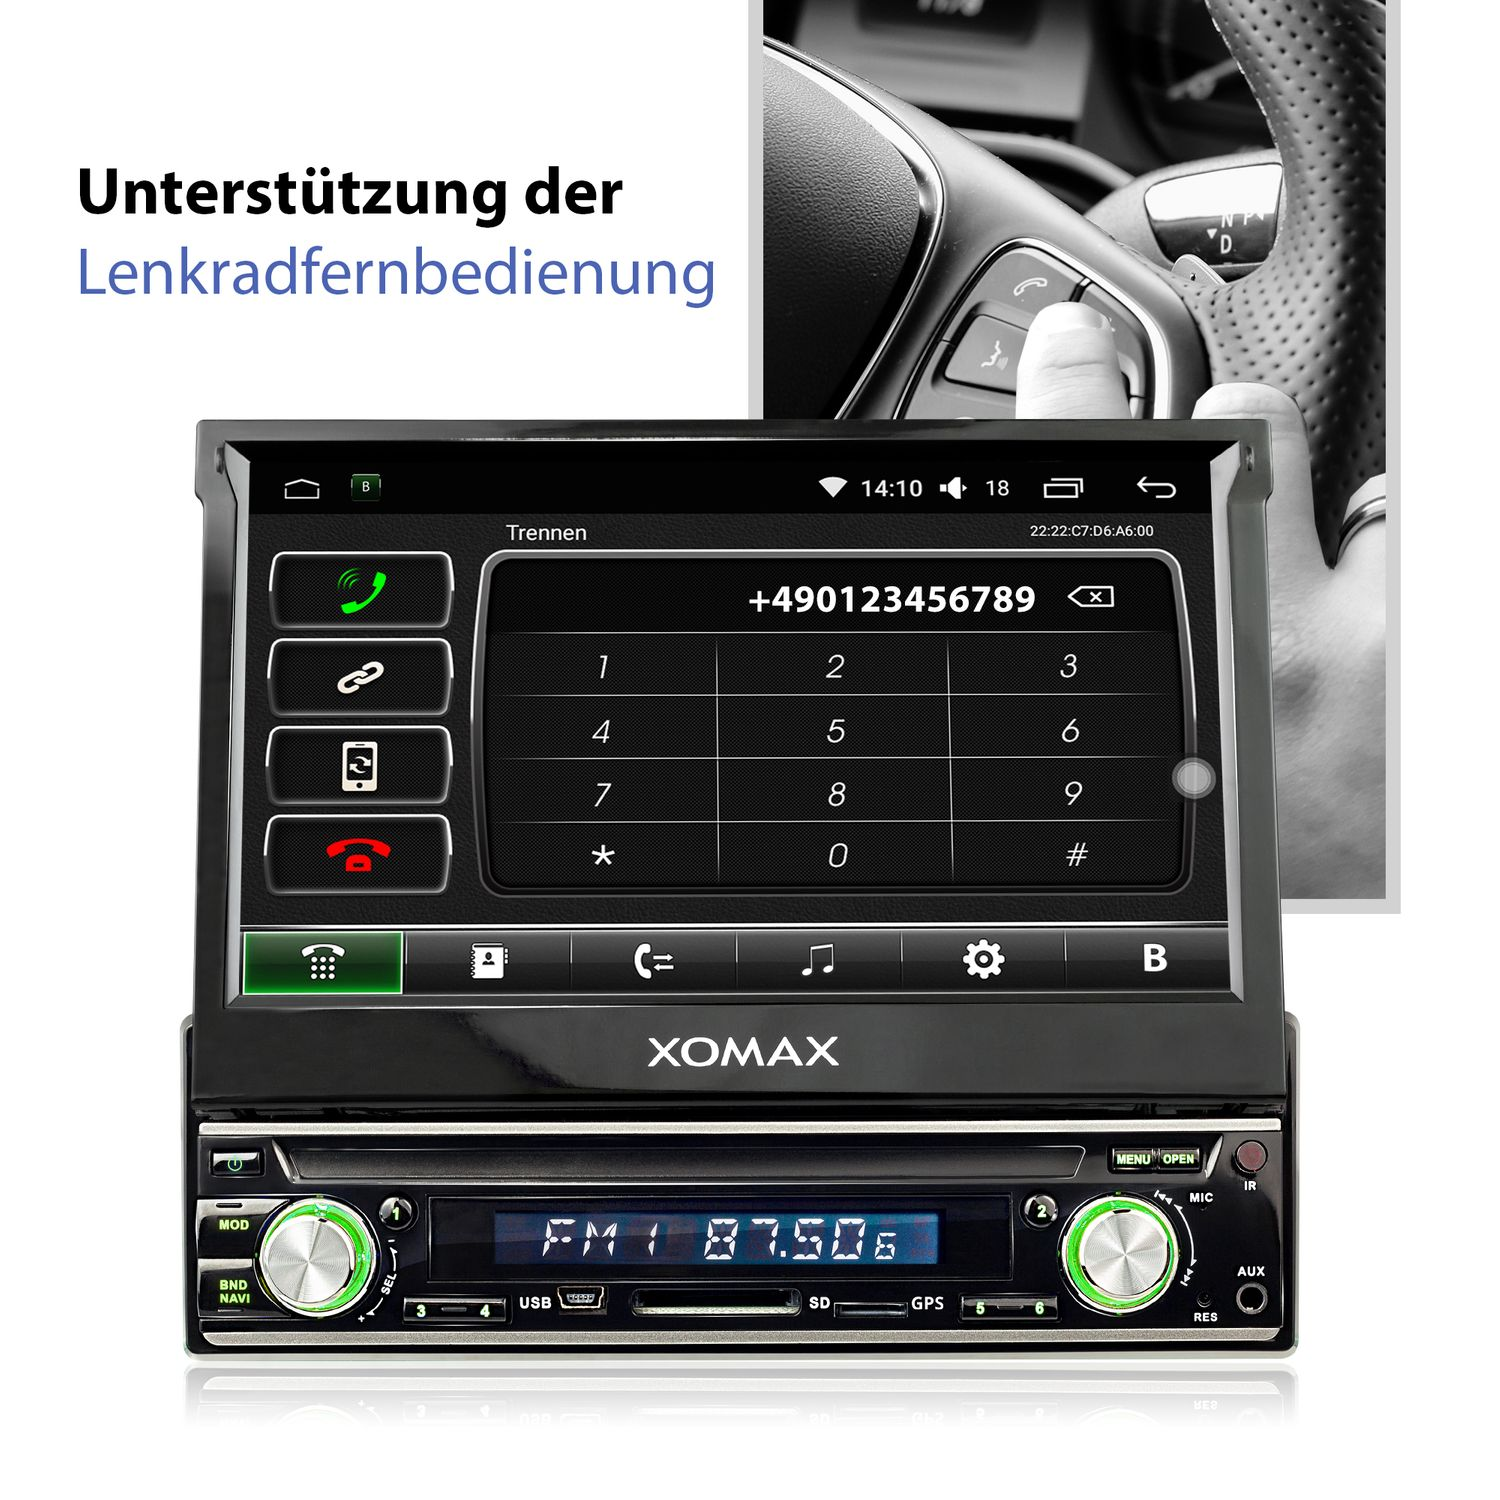 xomax xm vda713 1din autoradio mit android 6 0 1 navi 7 zoll touchscreen monitor bluetooth. Black Bedroom Furniture Sets. Home Design Ideas